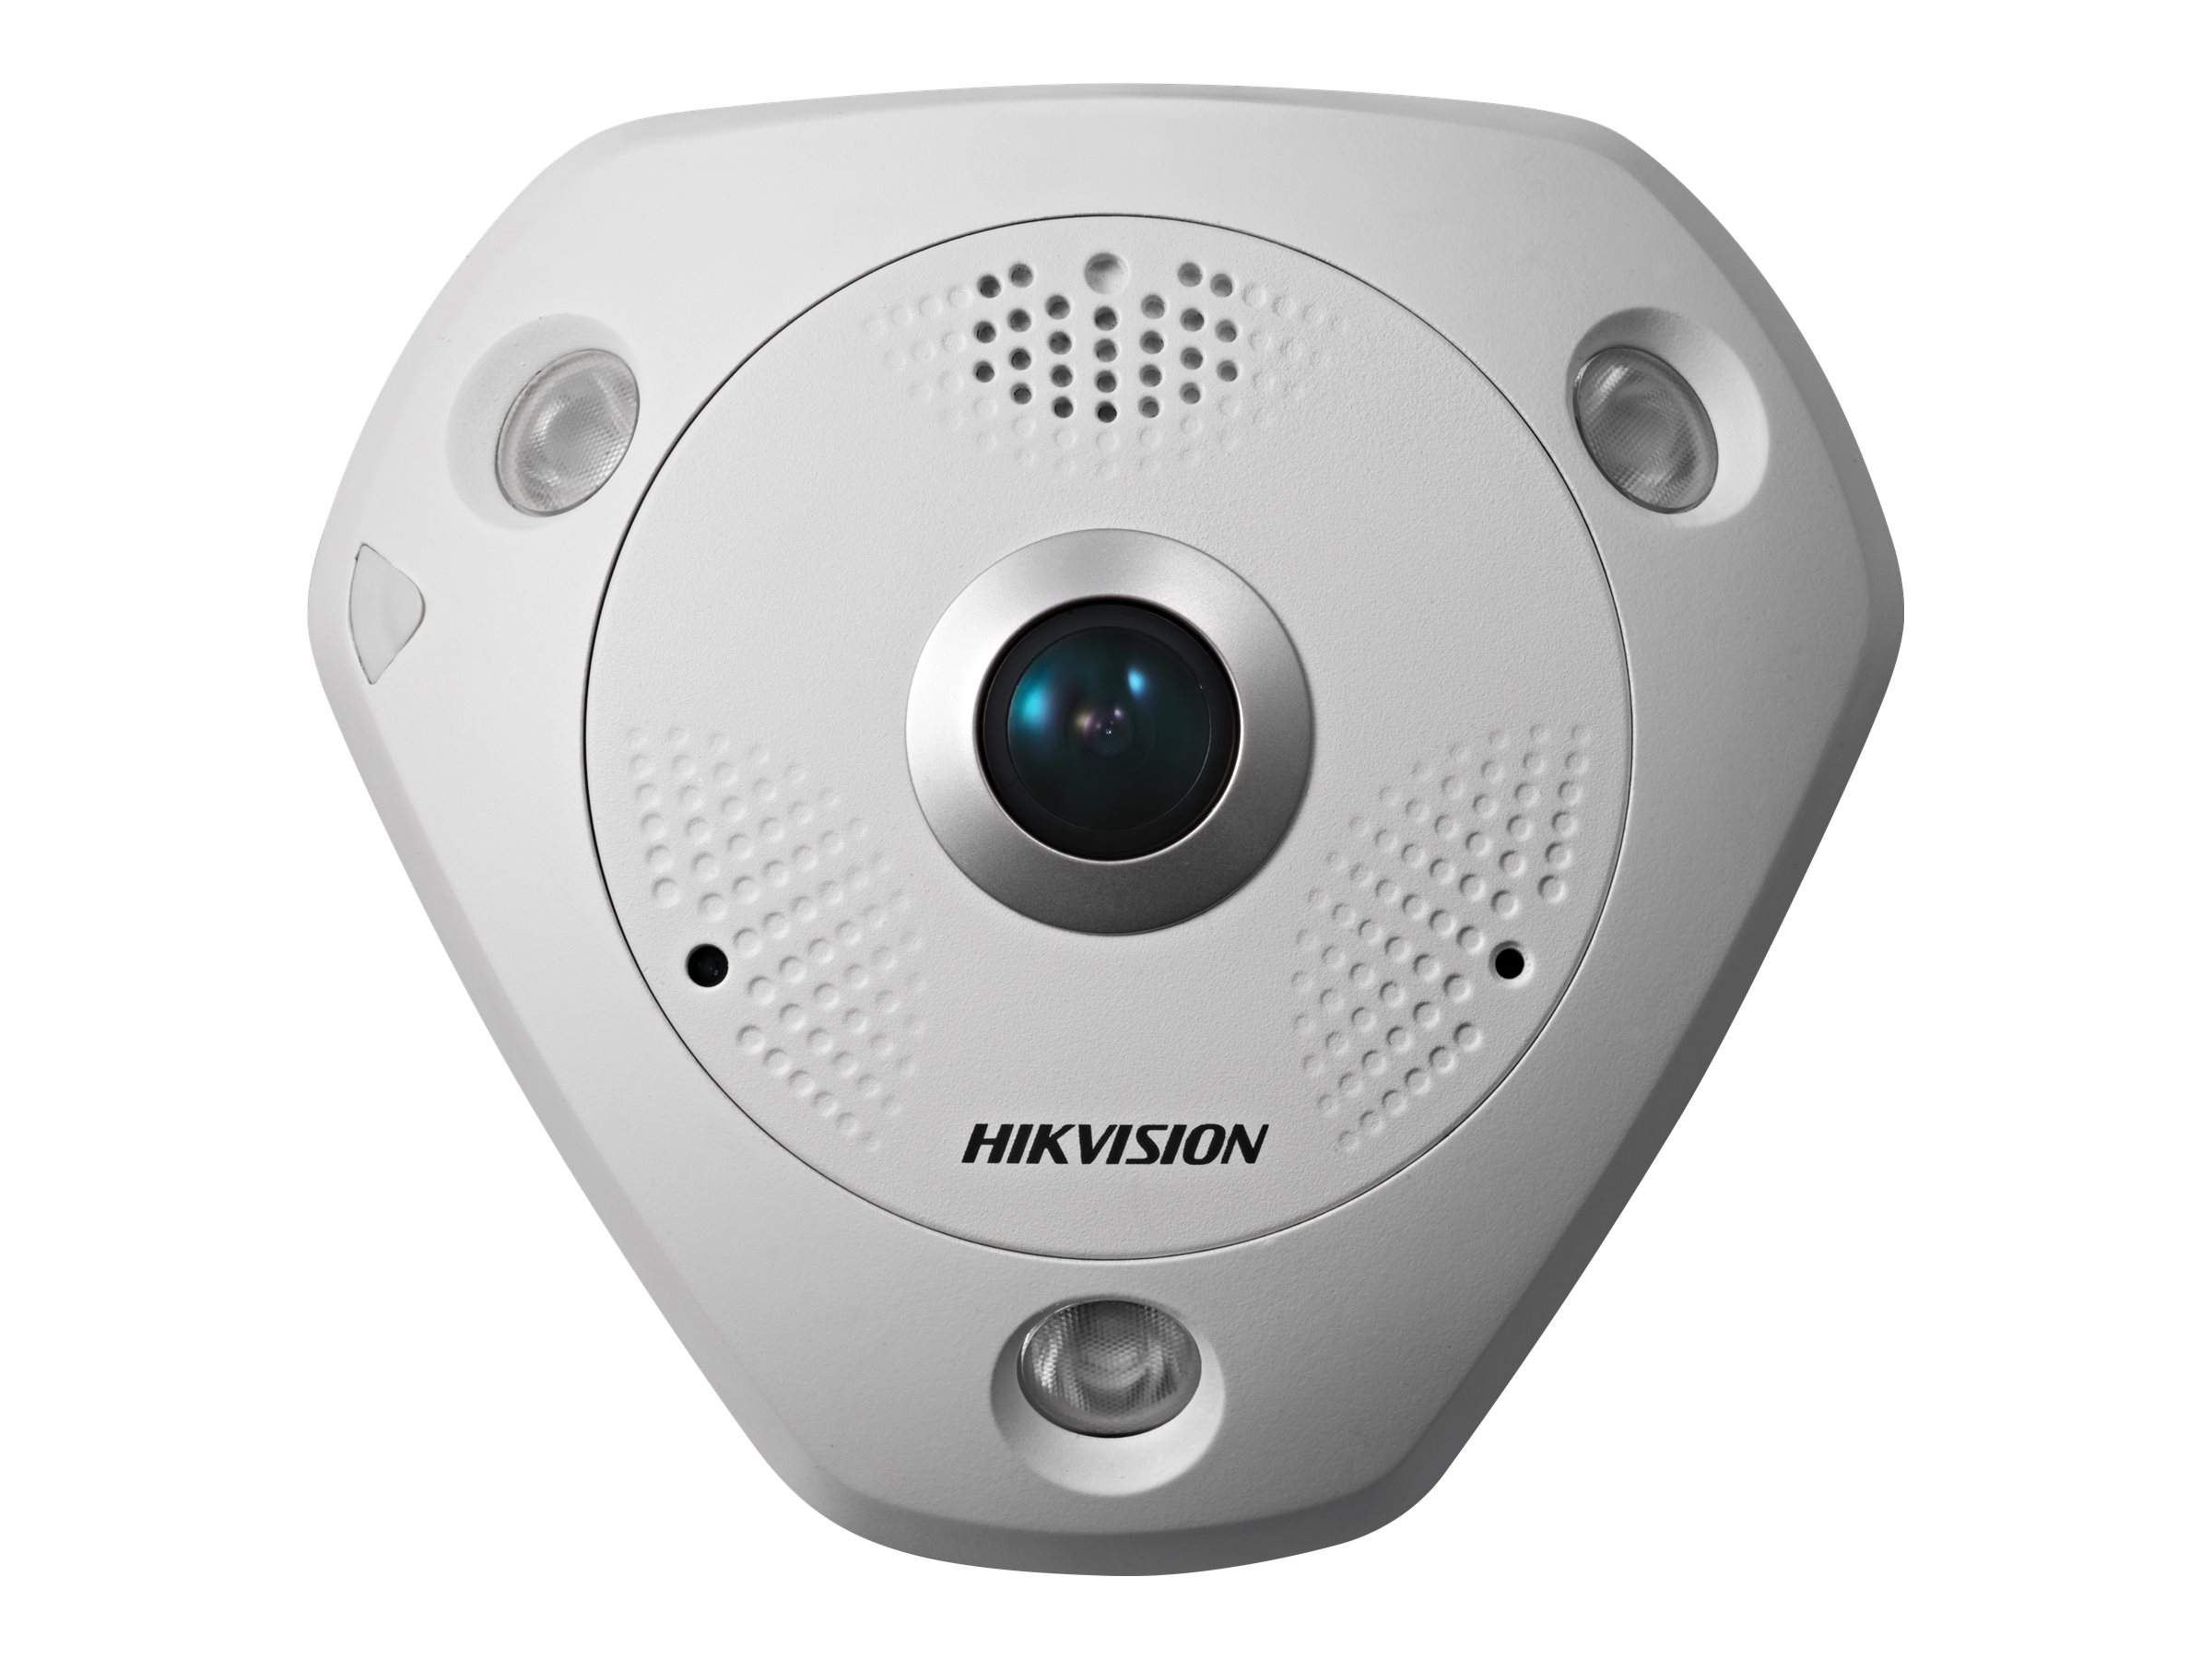 Hikvision 3MP WDR Fisheye Network Camera DS-2CD6332FWD-IV - network surveillance camera